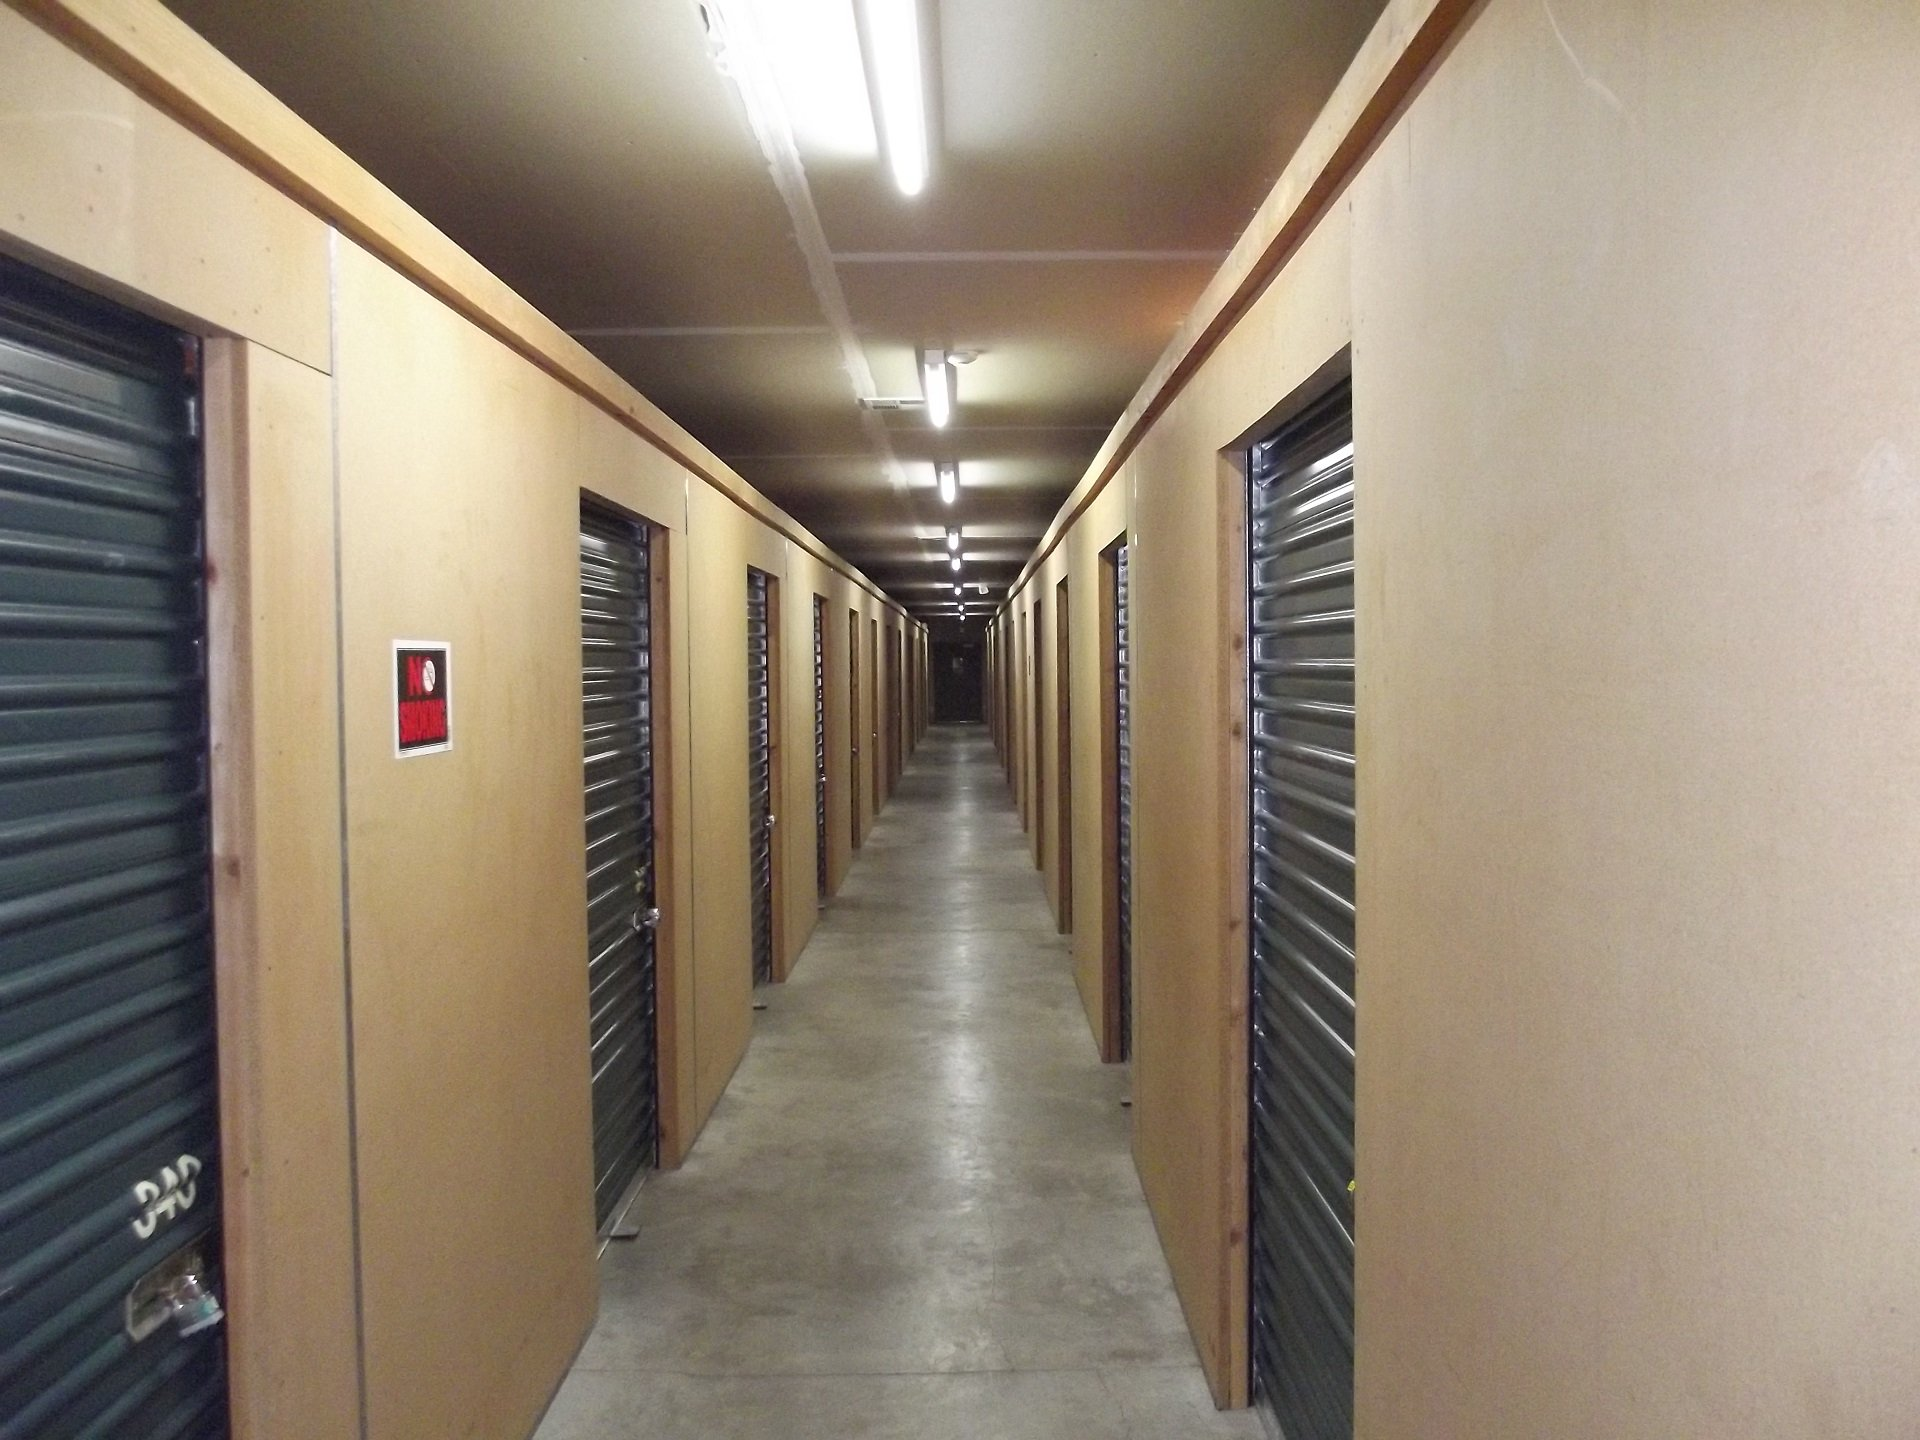 All our units are safe and secure. We even offer heated storage for more sensitive items